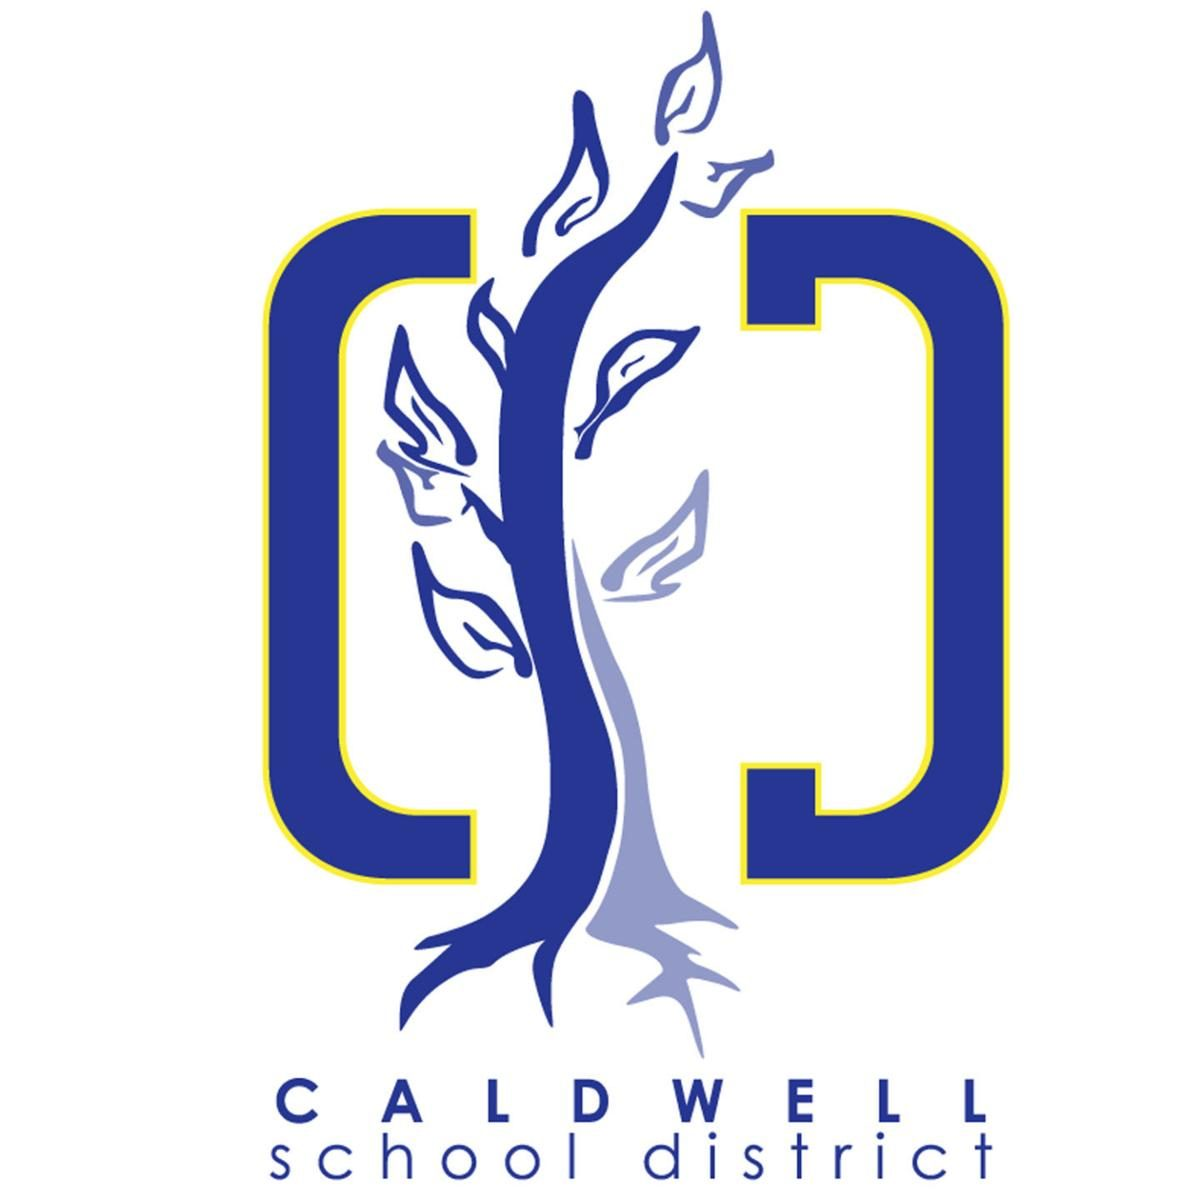 Caldwell school District